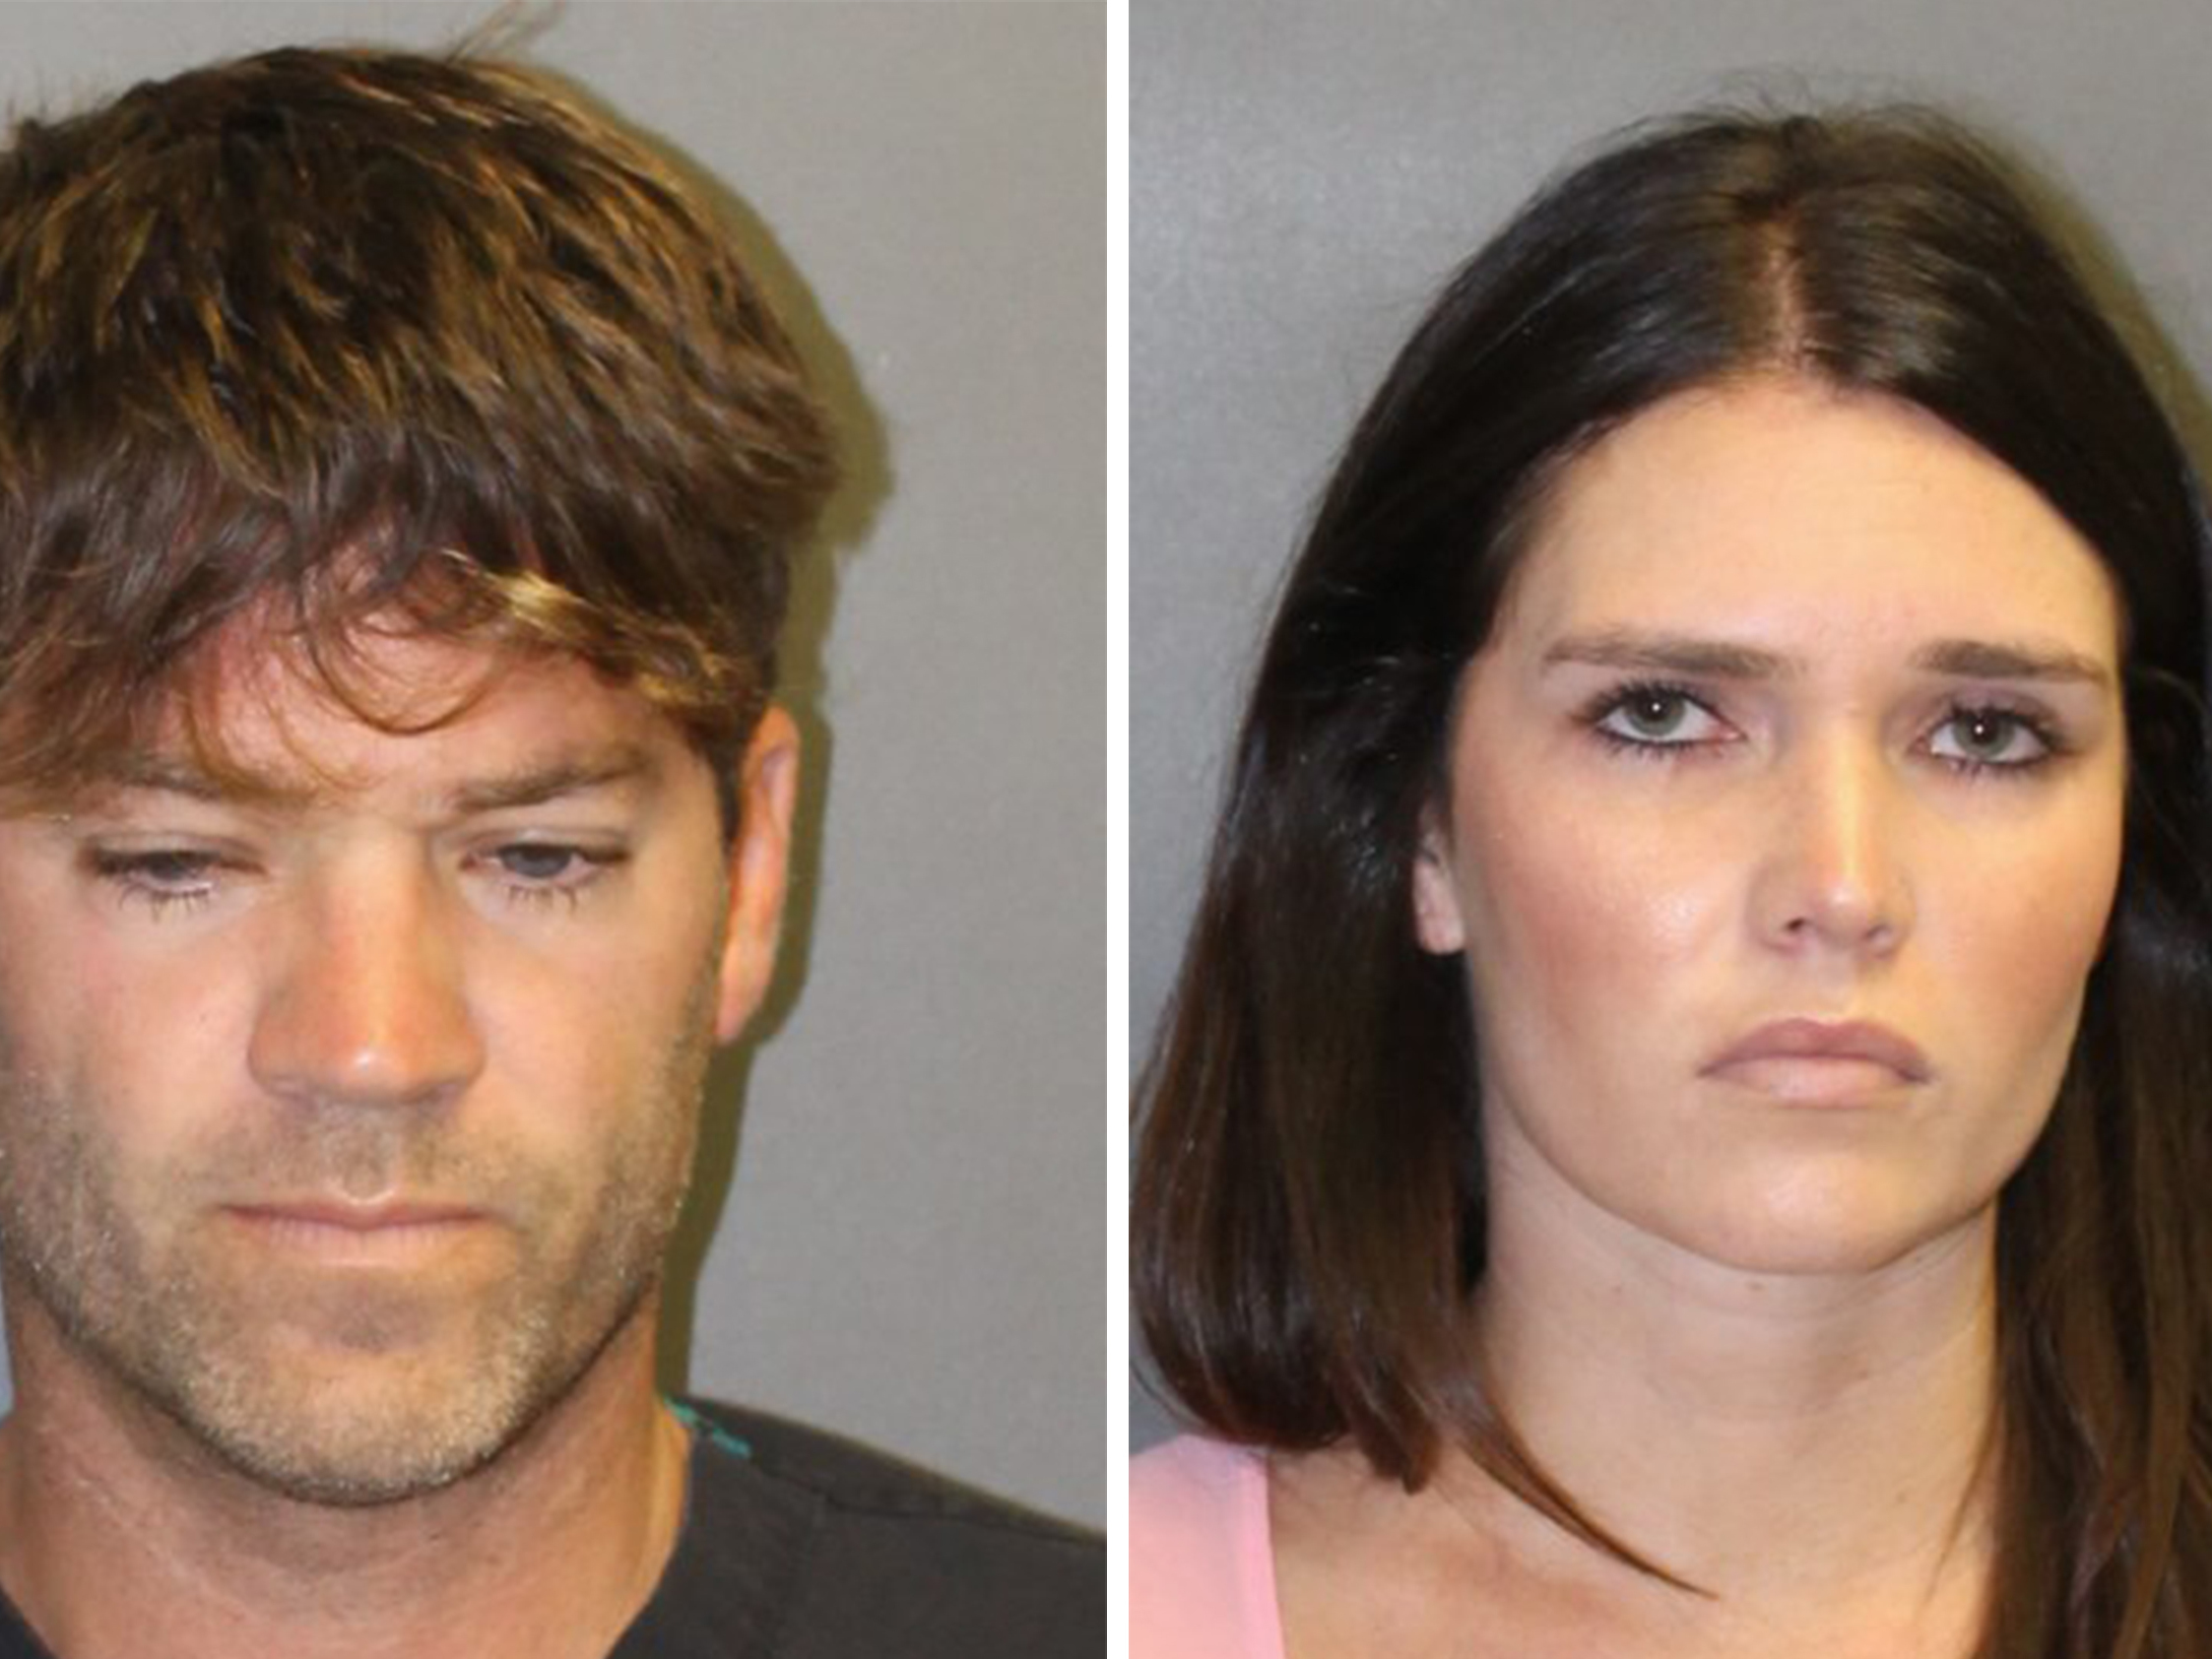 US doc, girlfriend accused of drug rapes; hundreds of victims likely